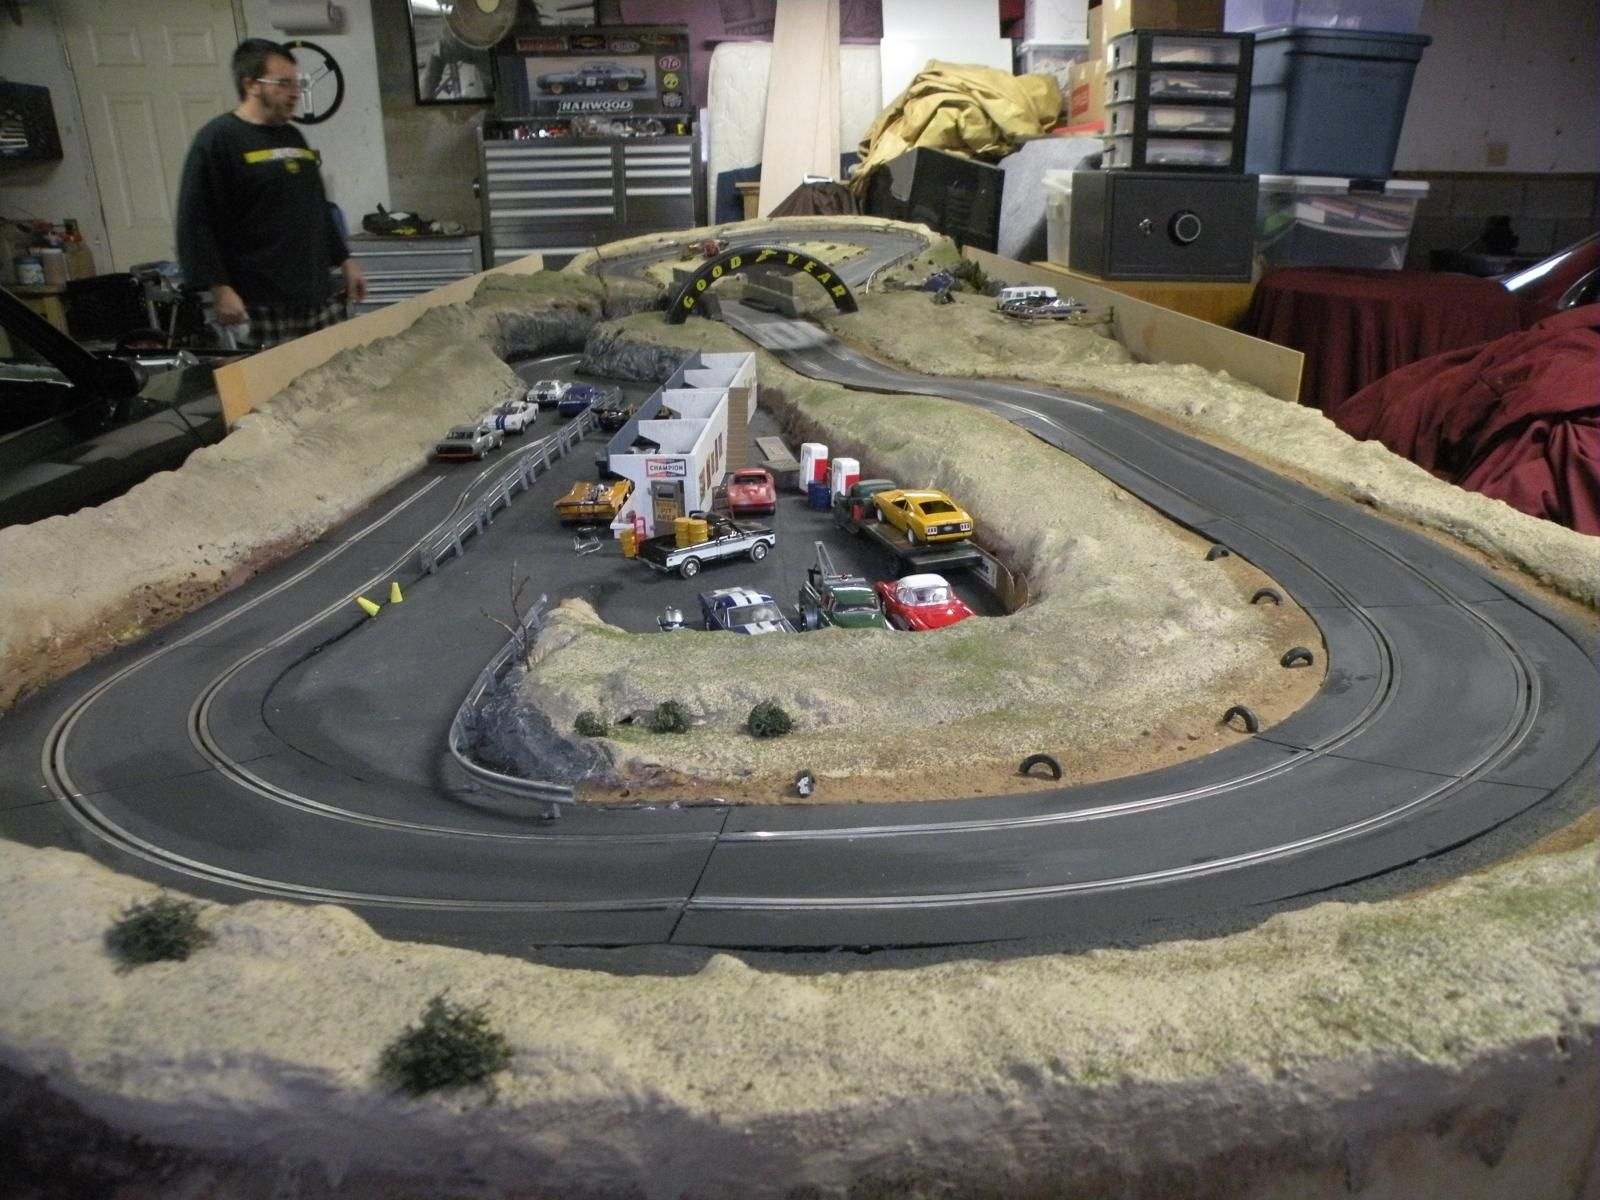 Carrera slot car track vintage scene cars